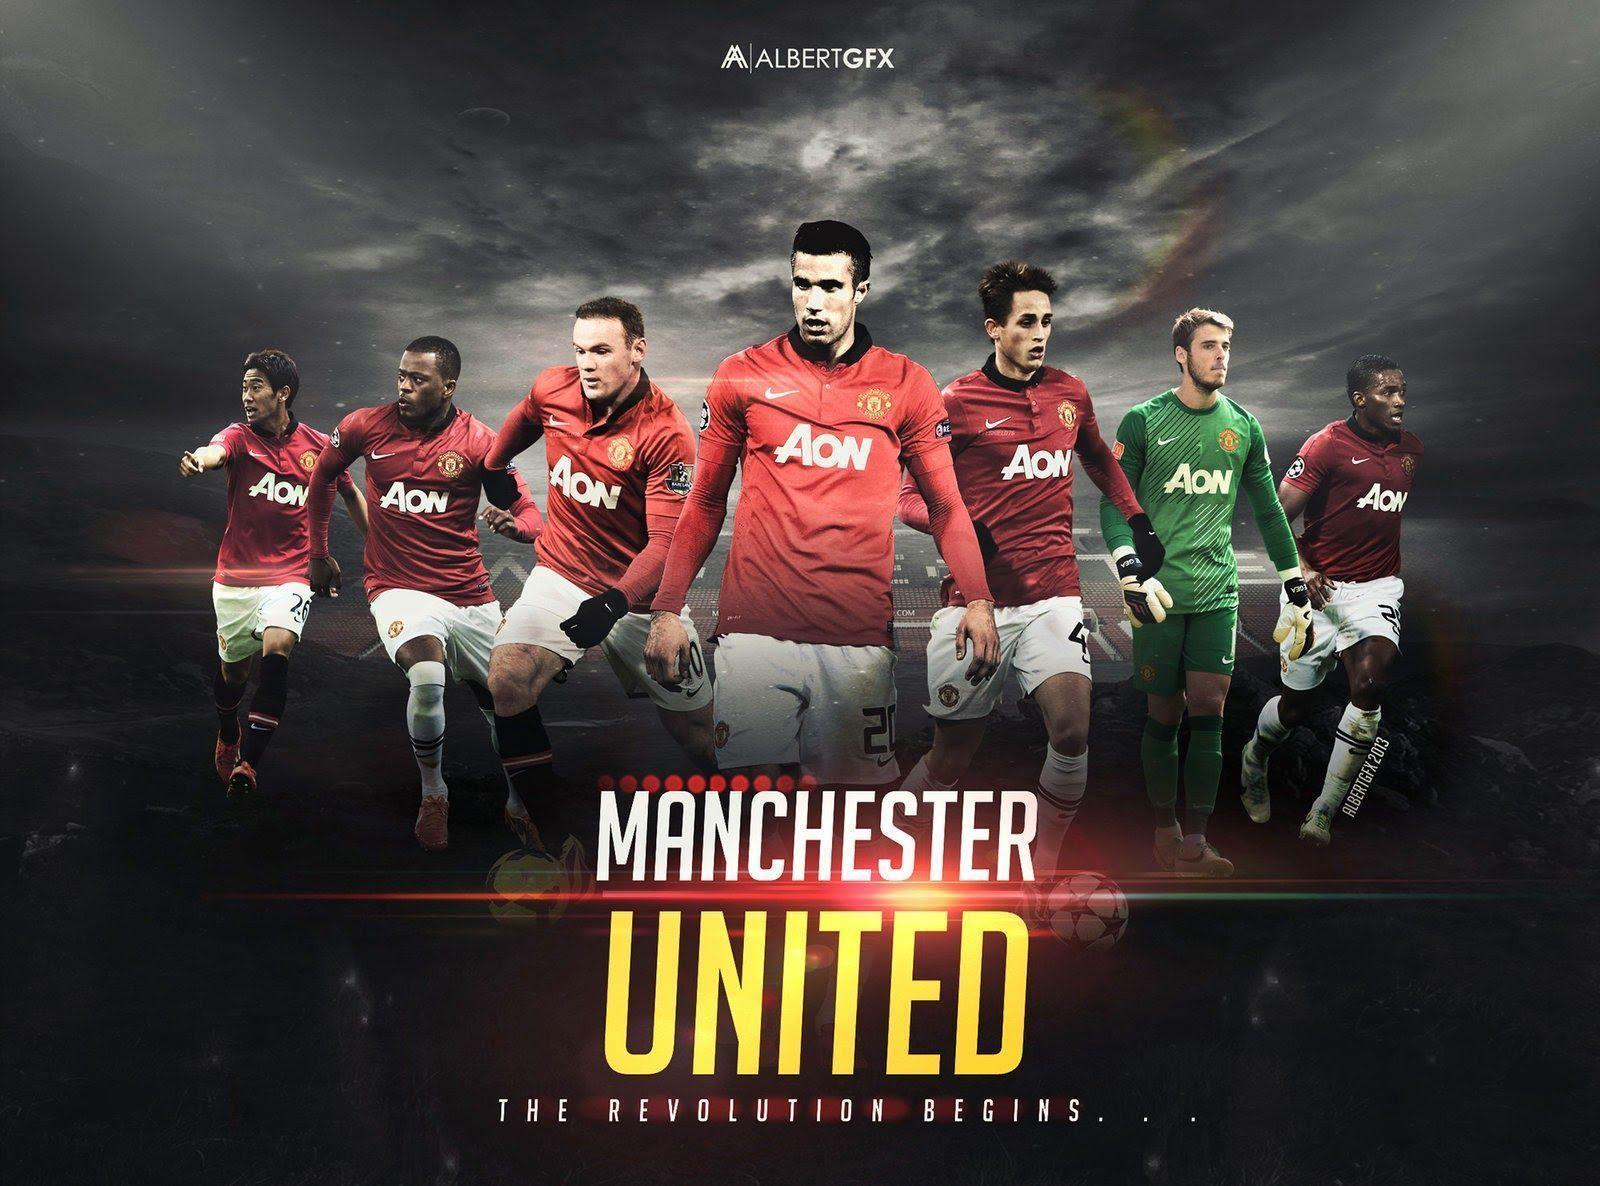 DOWNLOAD TEMA MANCHESTER UNITED TERBARU 2015 FOR PC